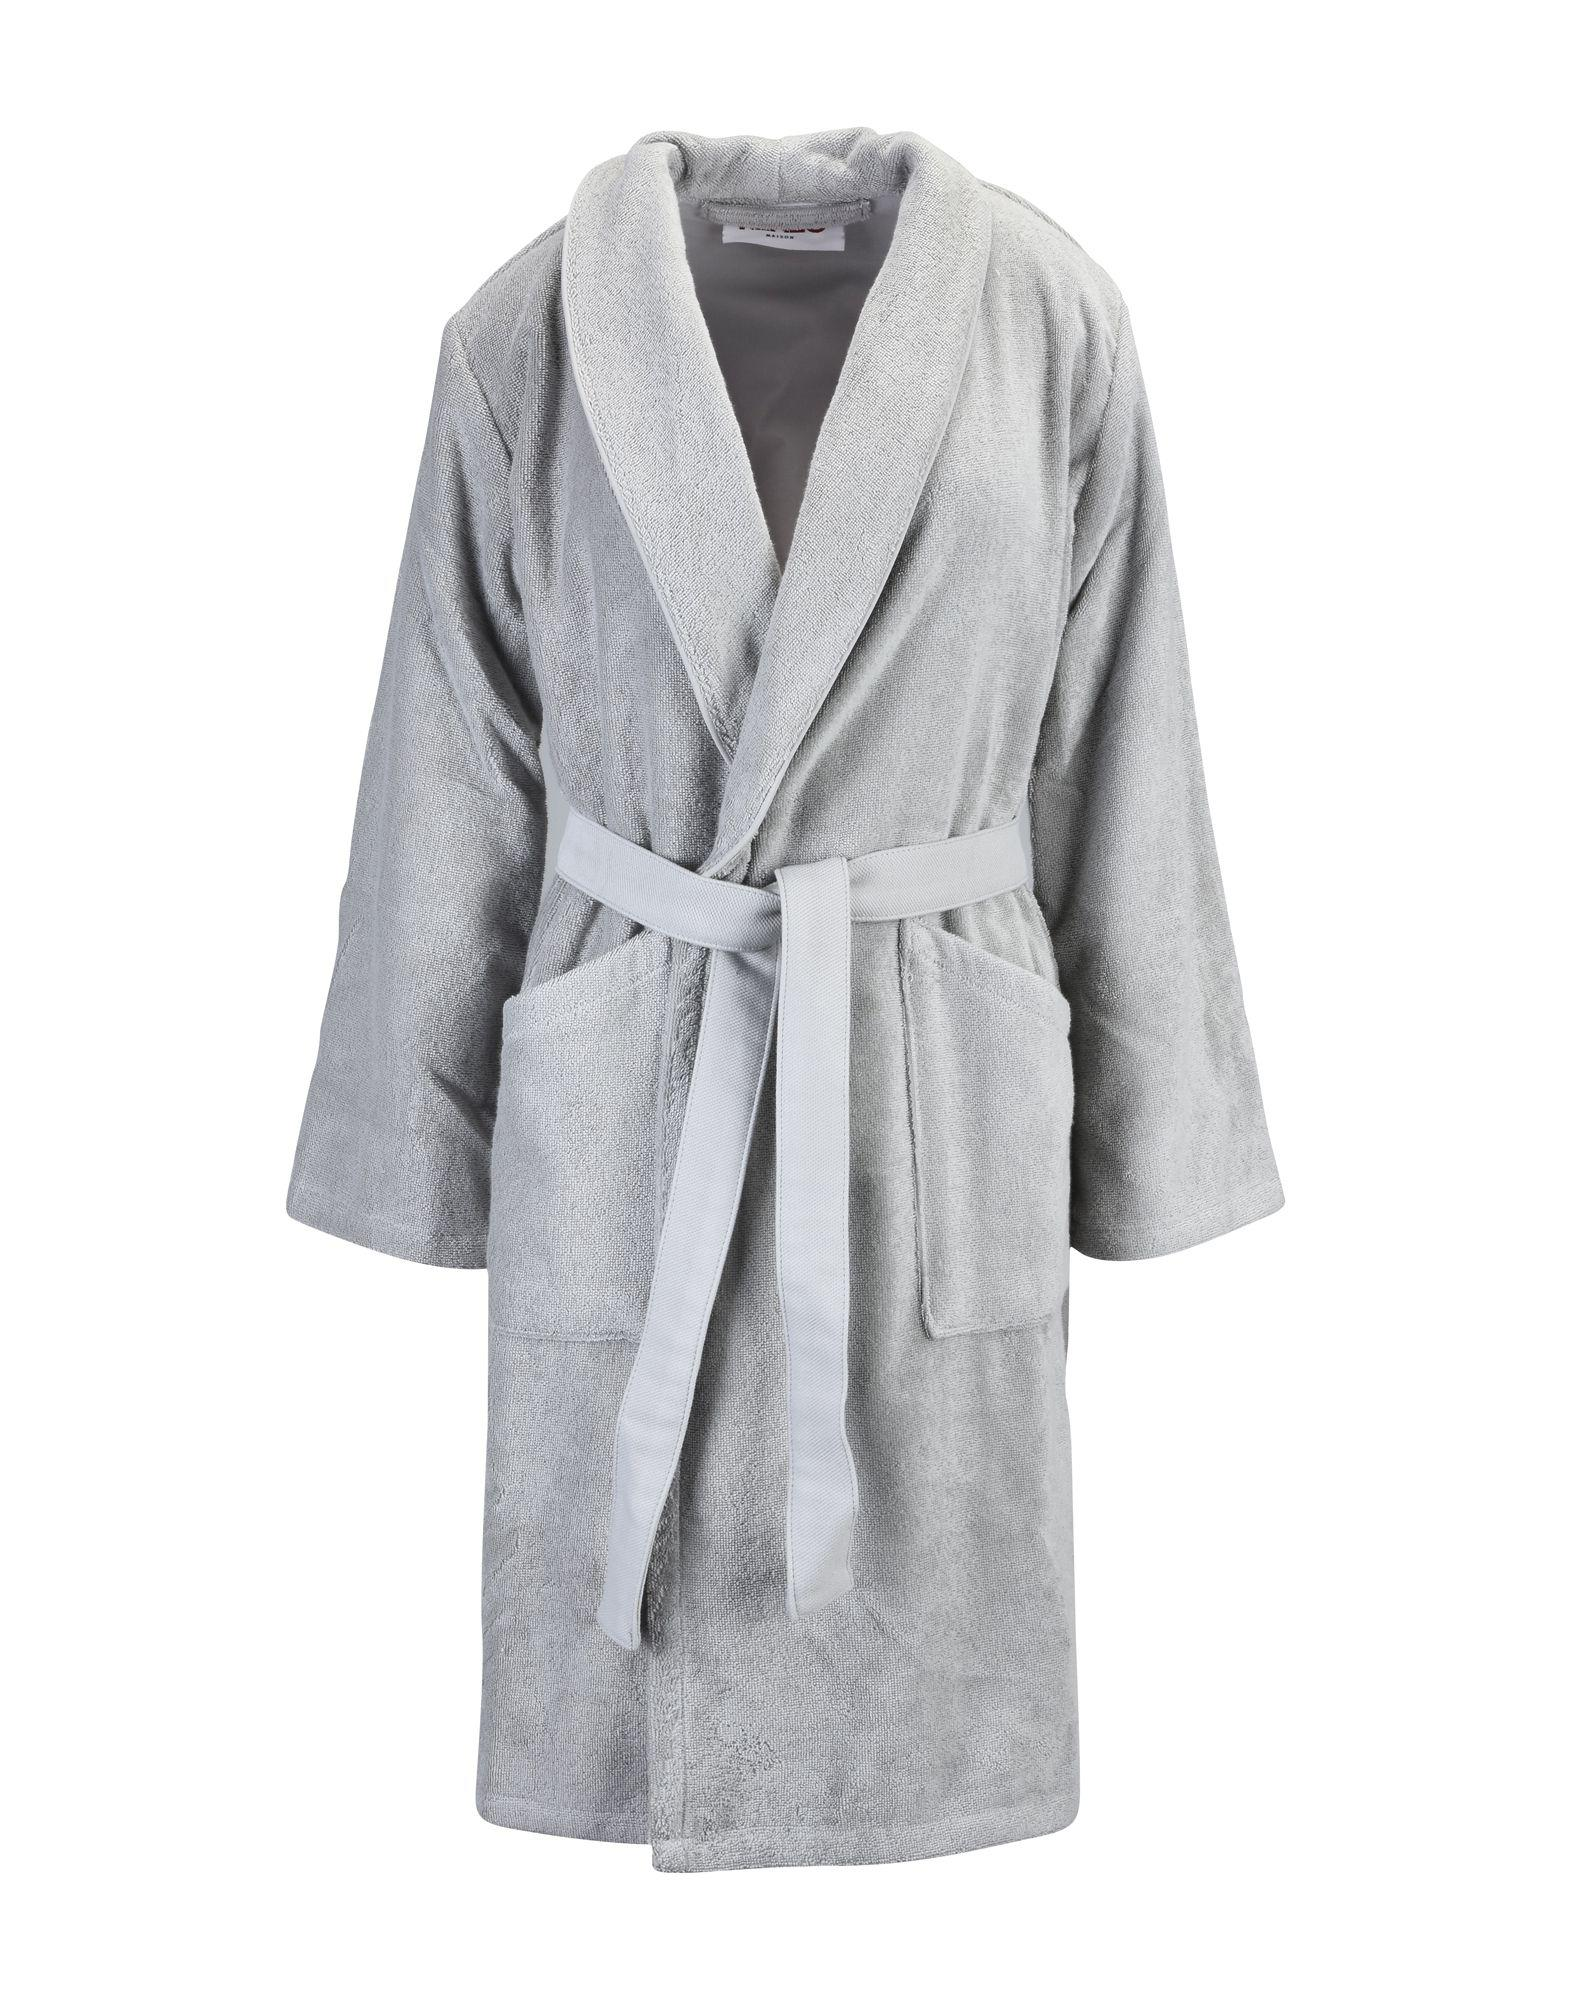 Kenzo Towelling Dressing Gown in Gray for Men - Lyst